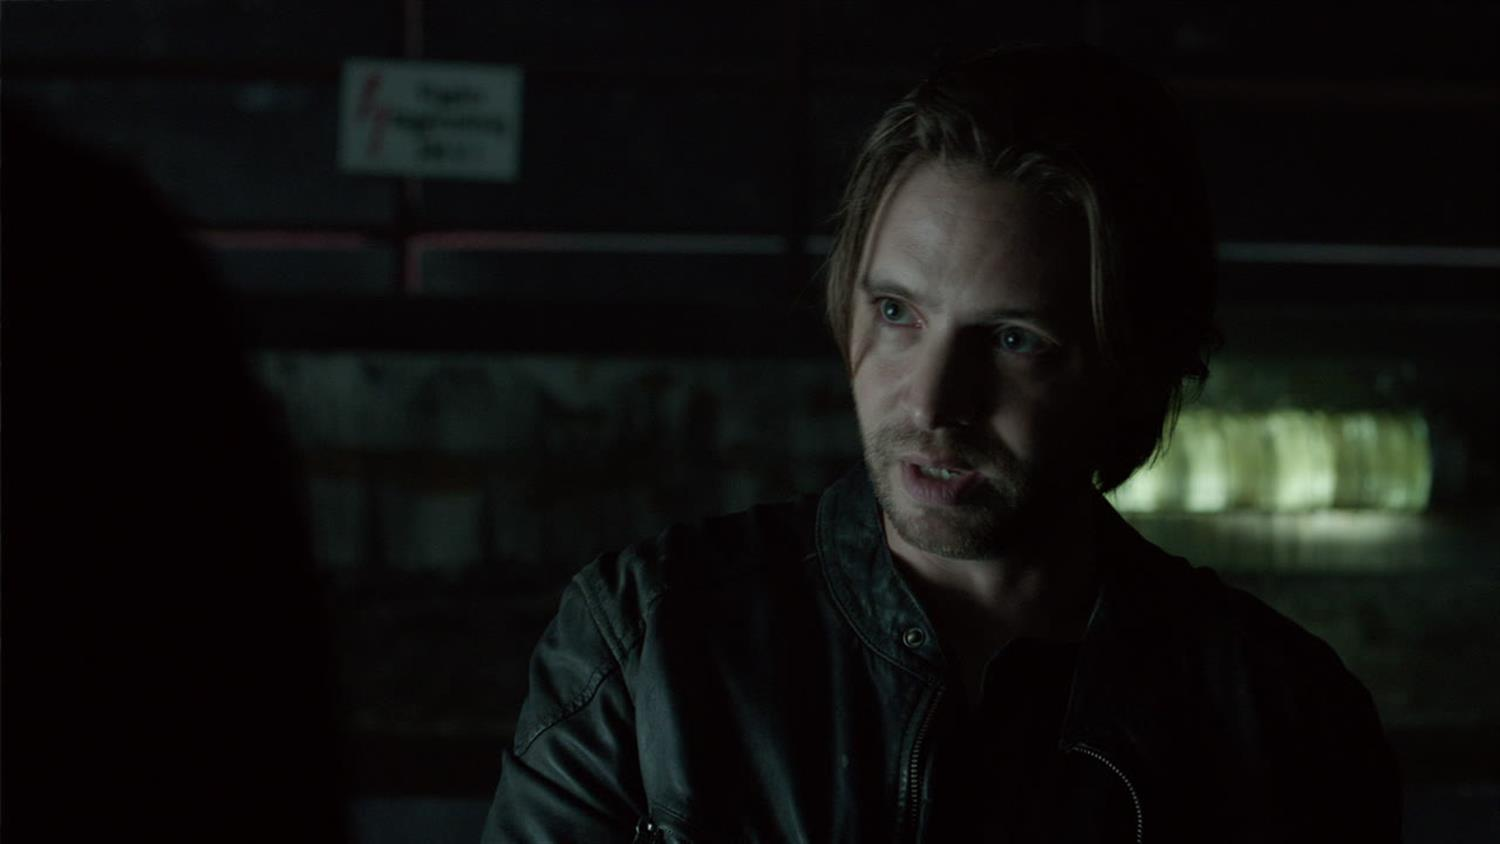 12 Monkeys Recap: Season 2, Episode 1